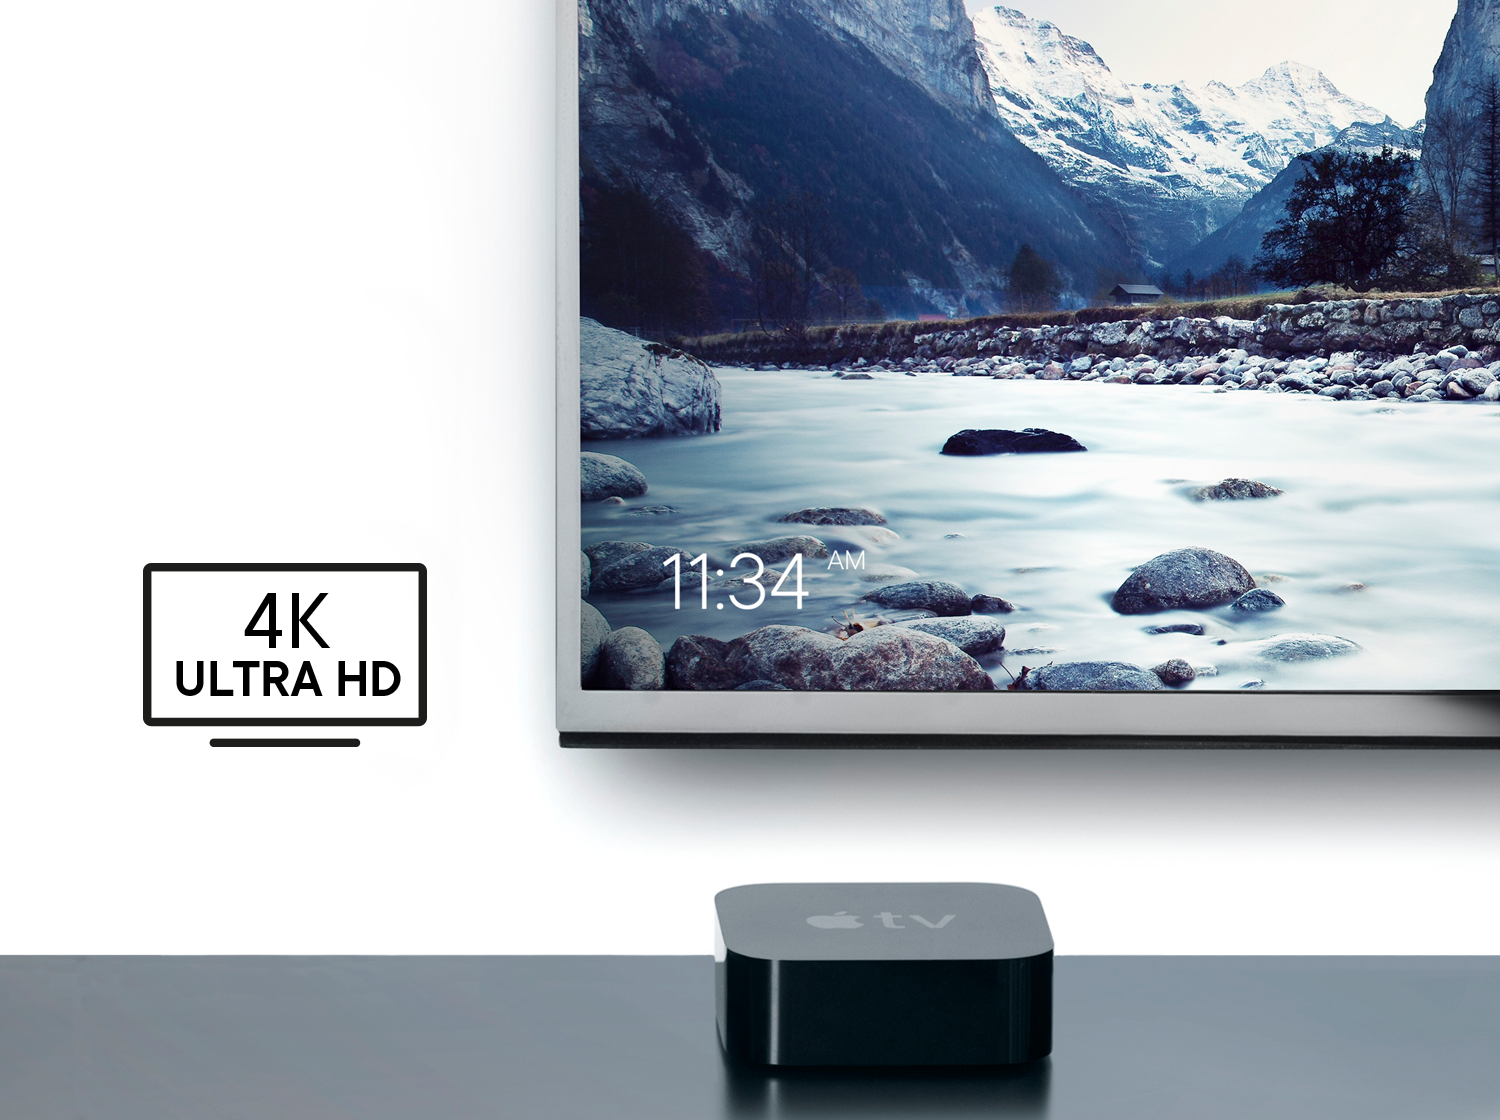 4K Ultra HD broadcast